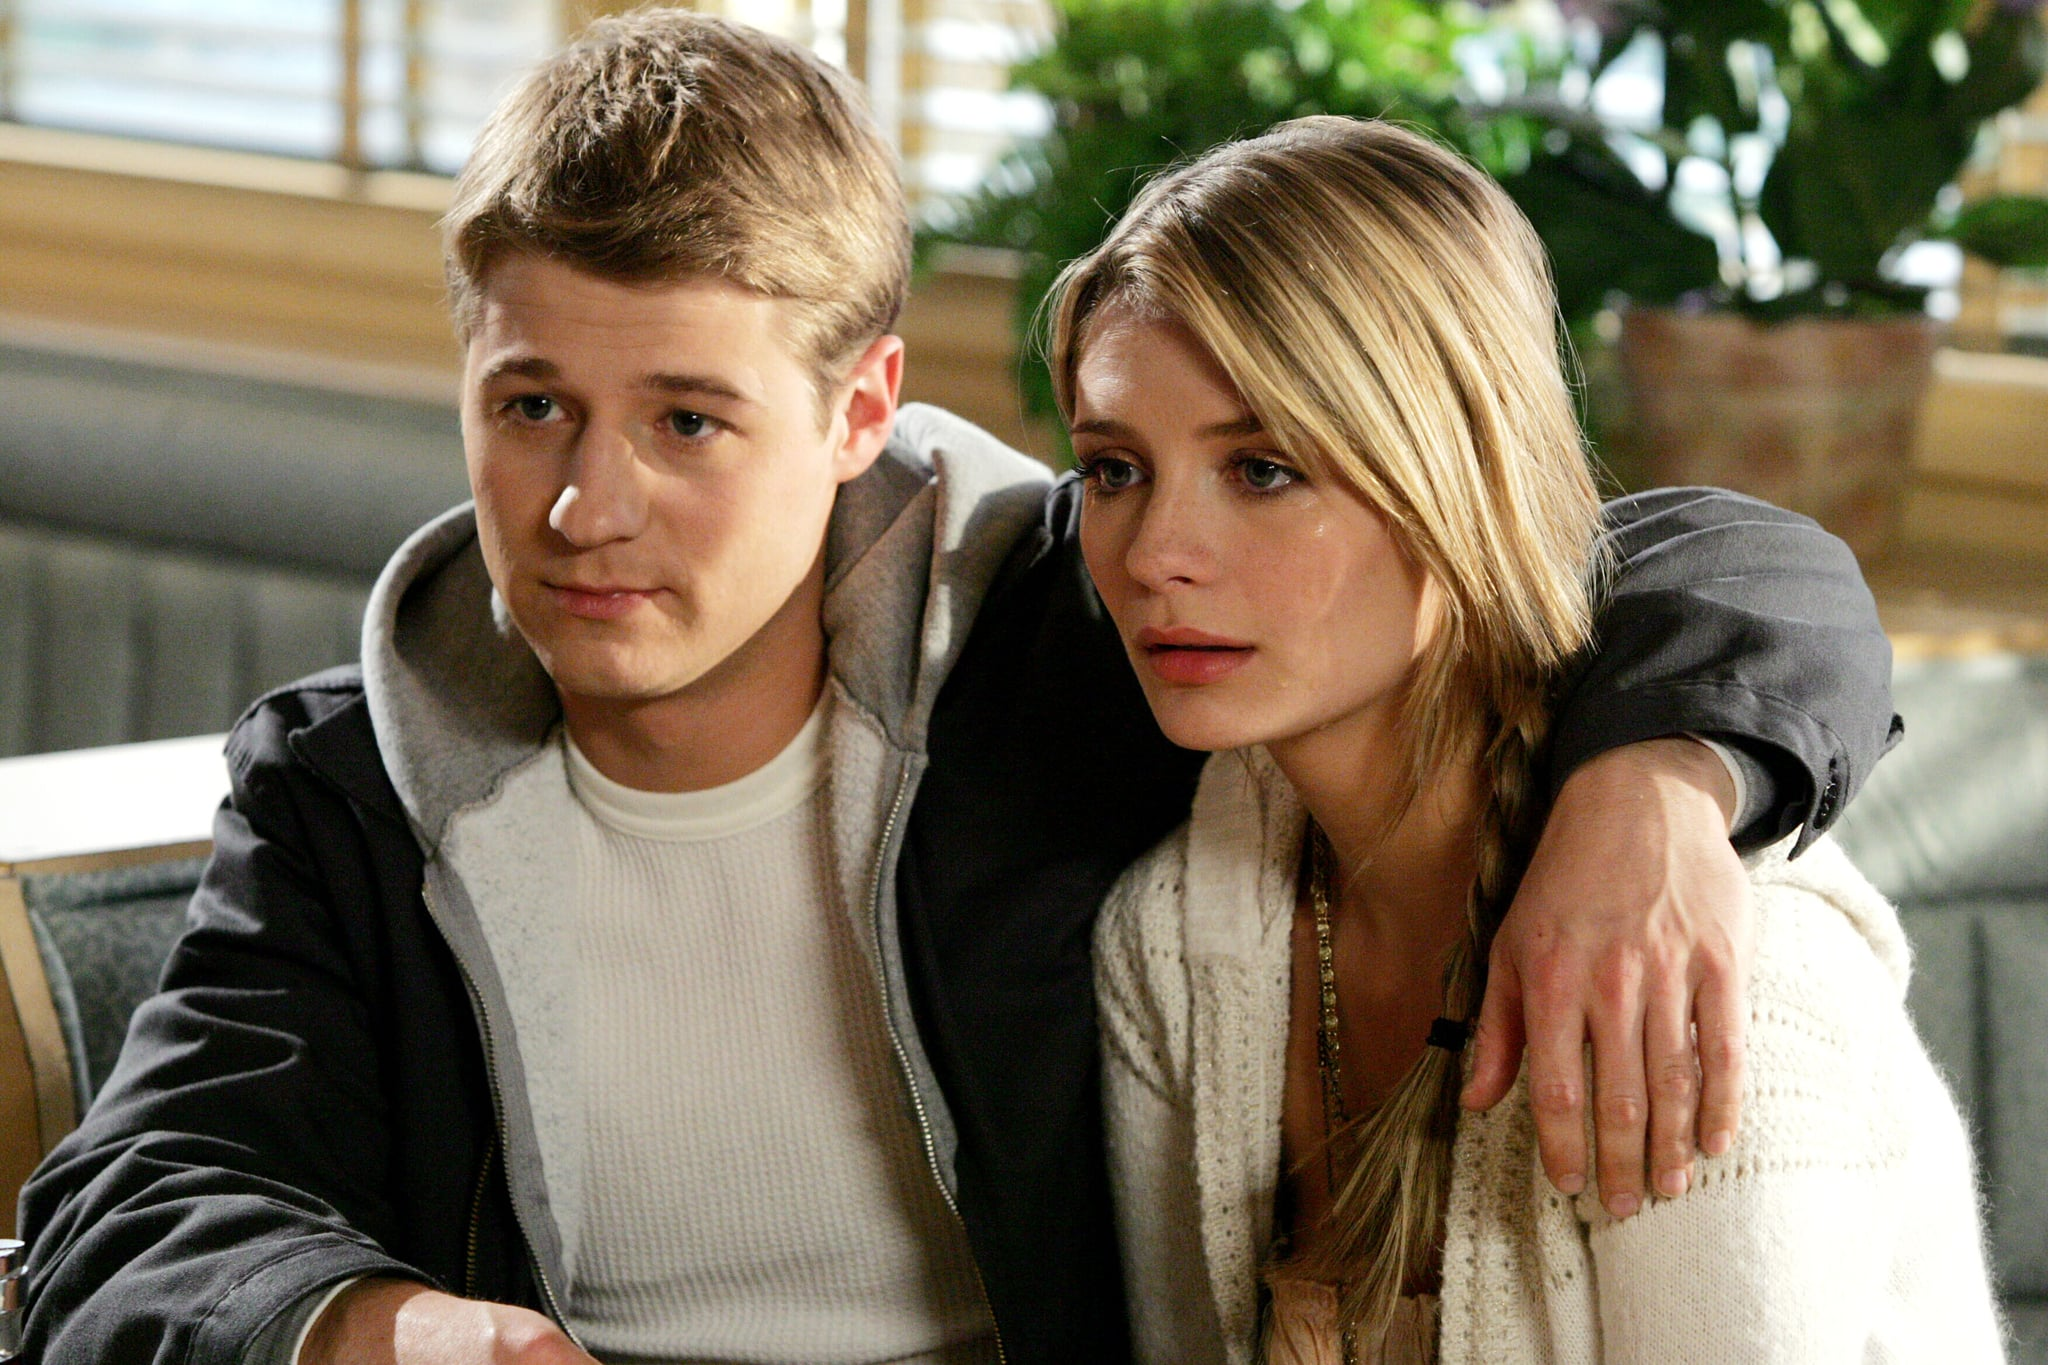 THE O.C., Benjamin McKenzie, Mischa Barton, (Season 3), 2003-2007. photo:  WB / Courtesy: Everett Collection